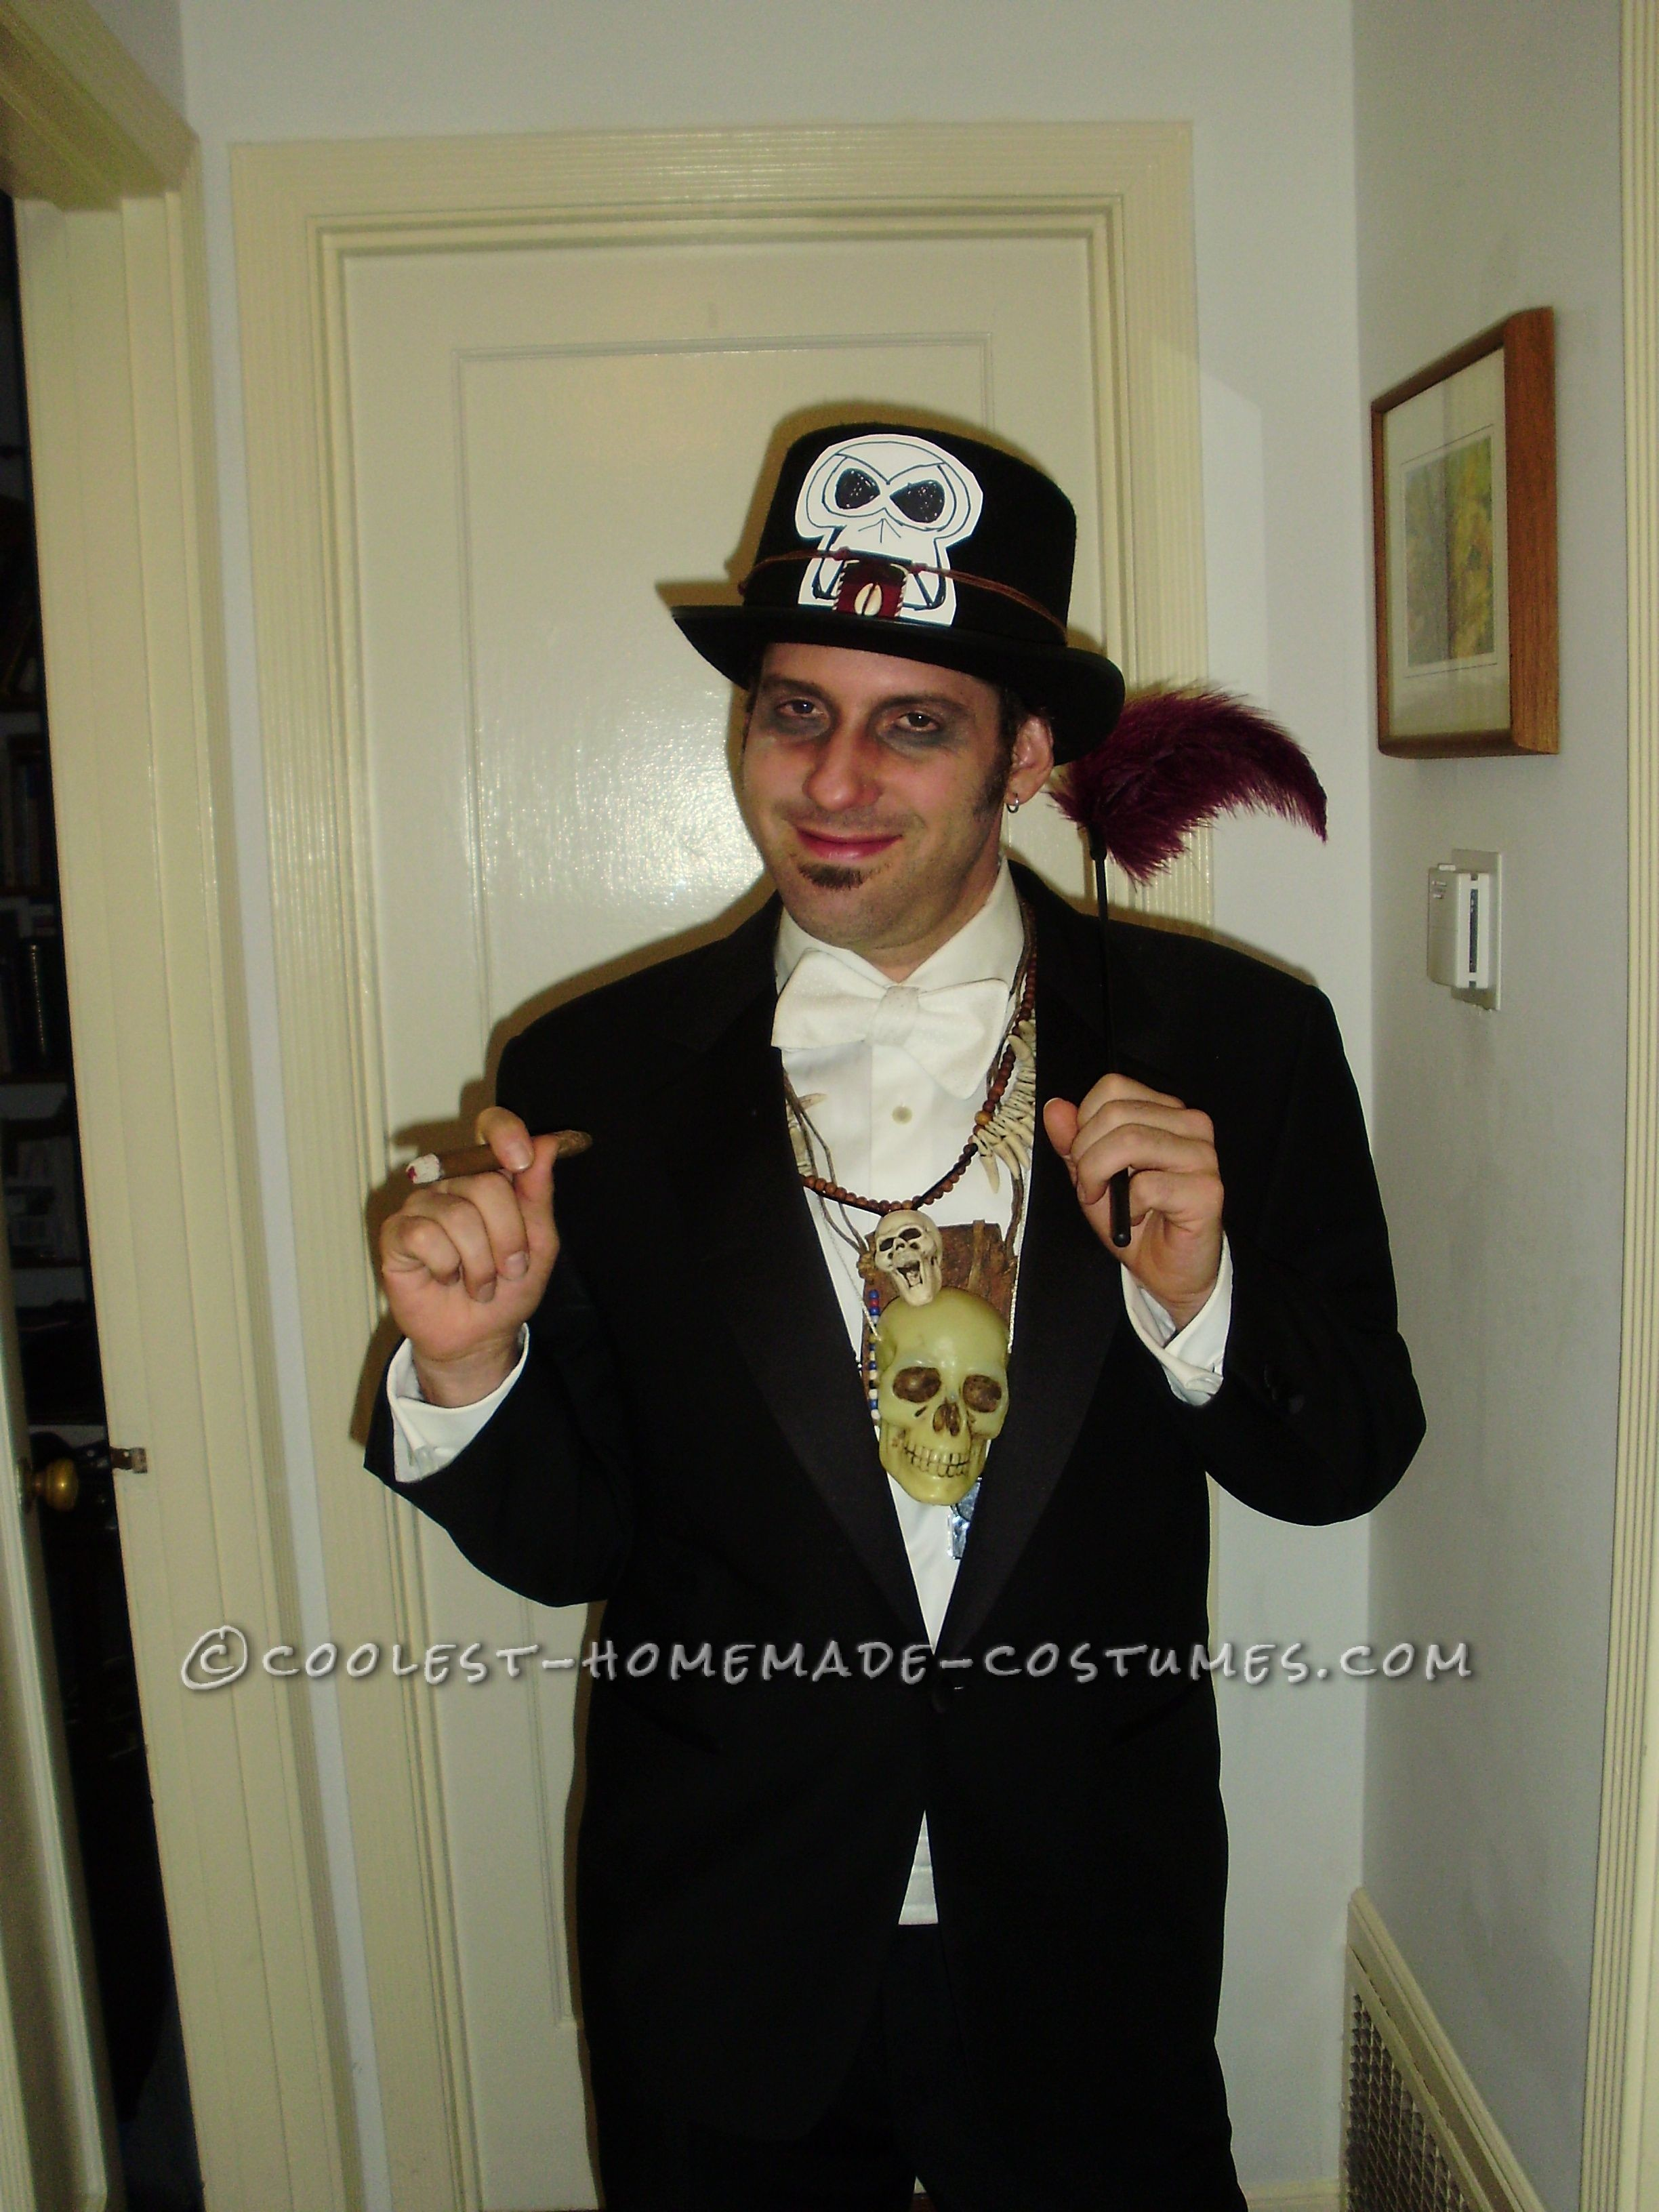 Baron Samedi (Baron Saturday) Costume